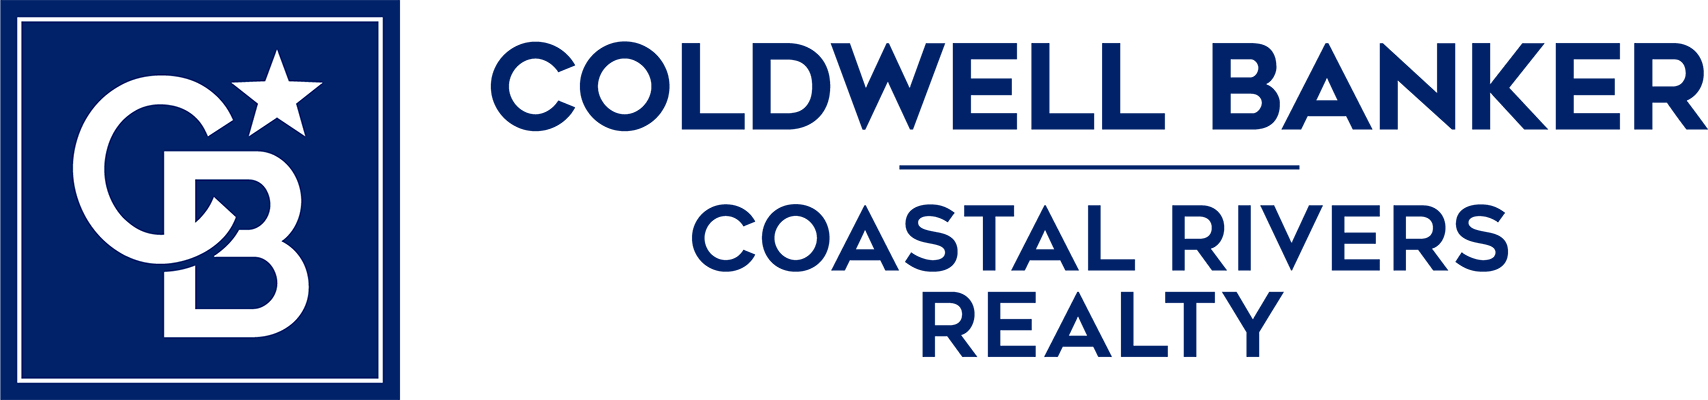 Coldwell Banker Coastal Rivers Logo